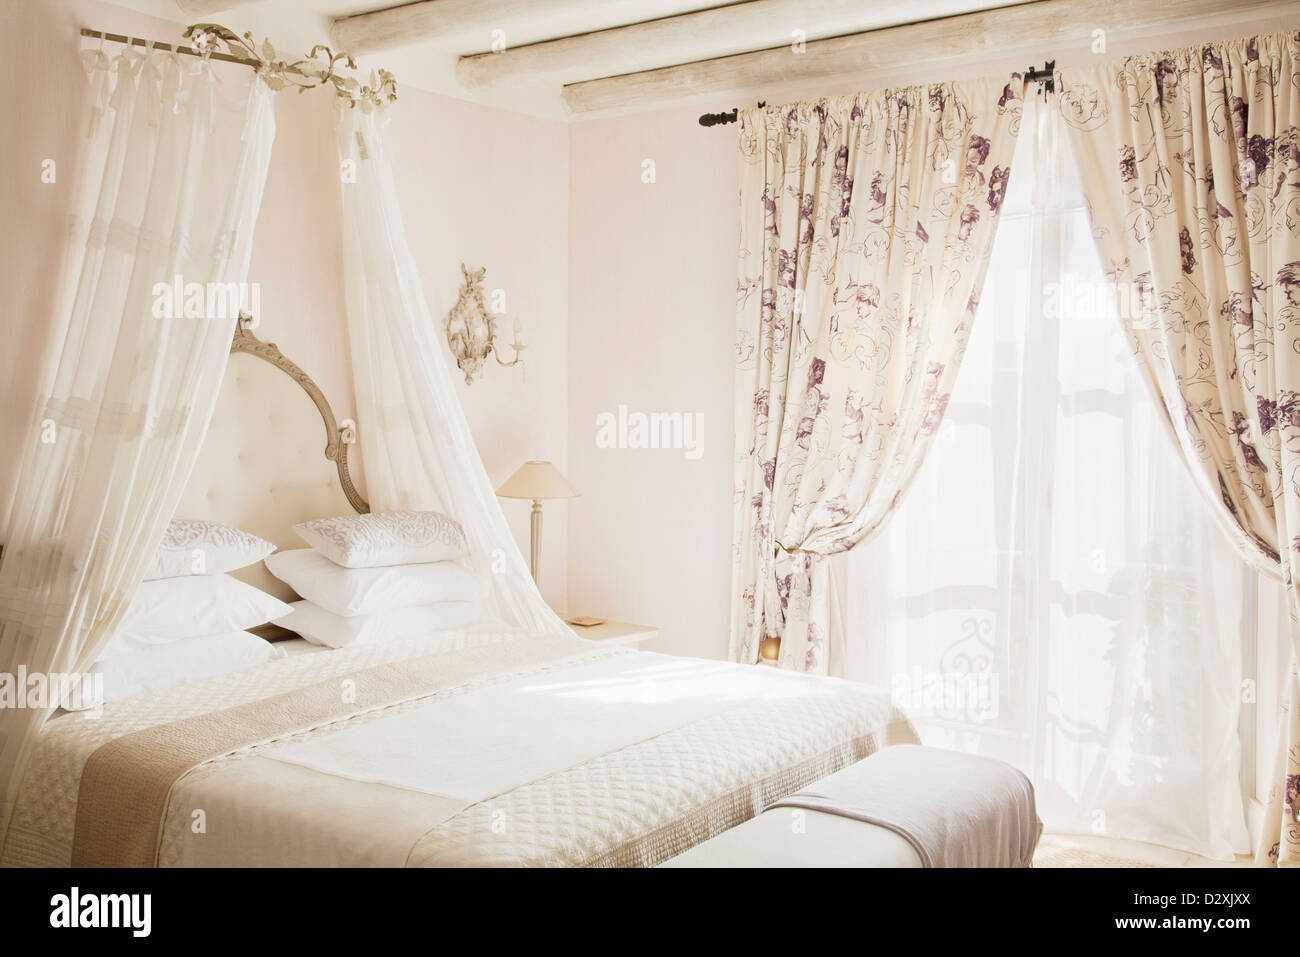 Bed with canopy in luxury bedroom - Stock Image